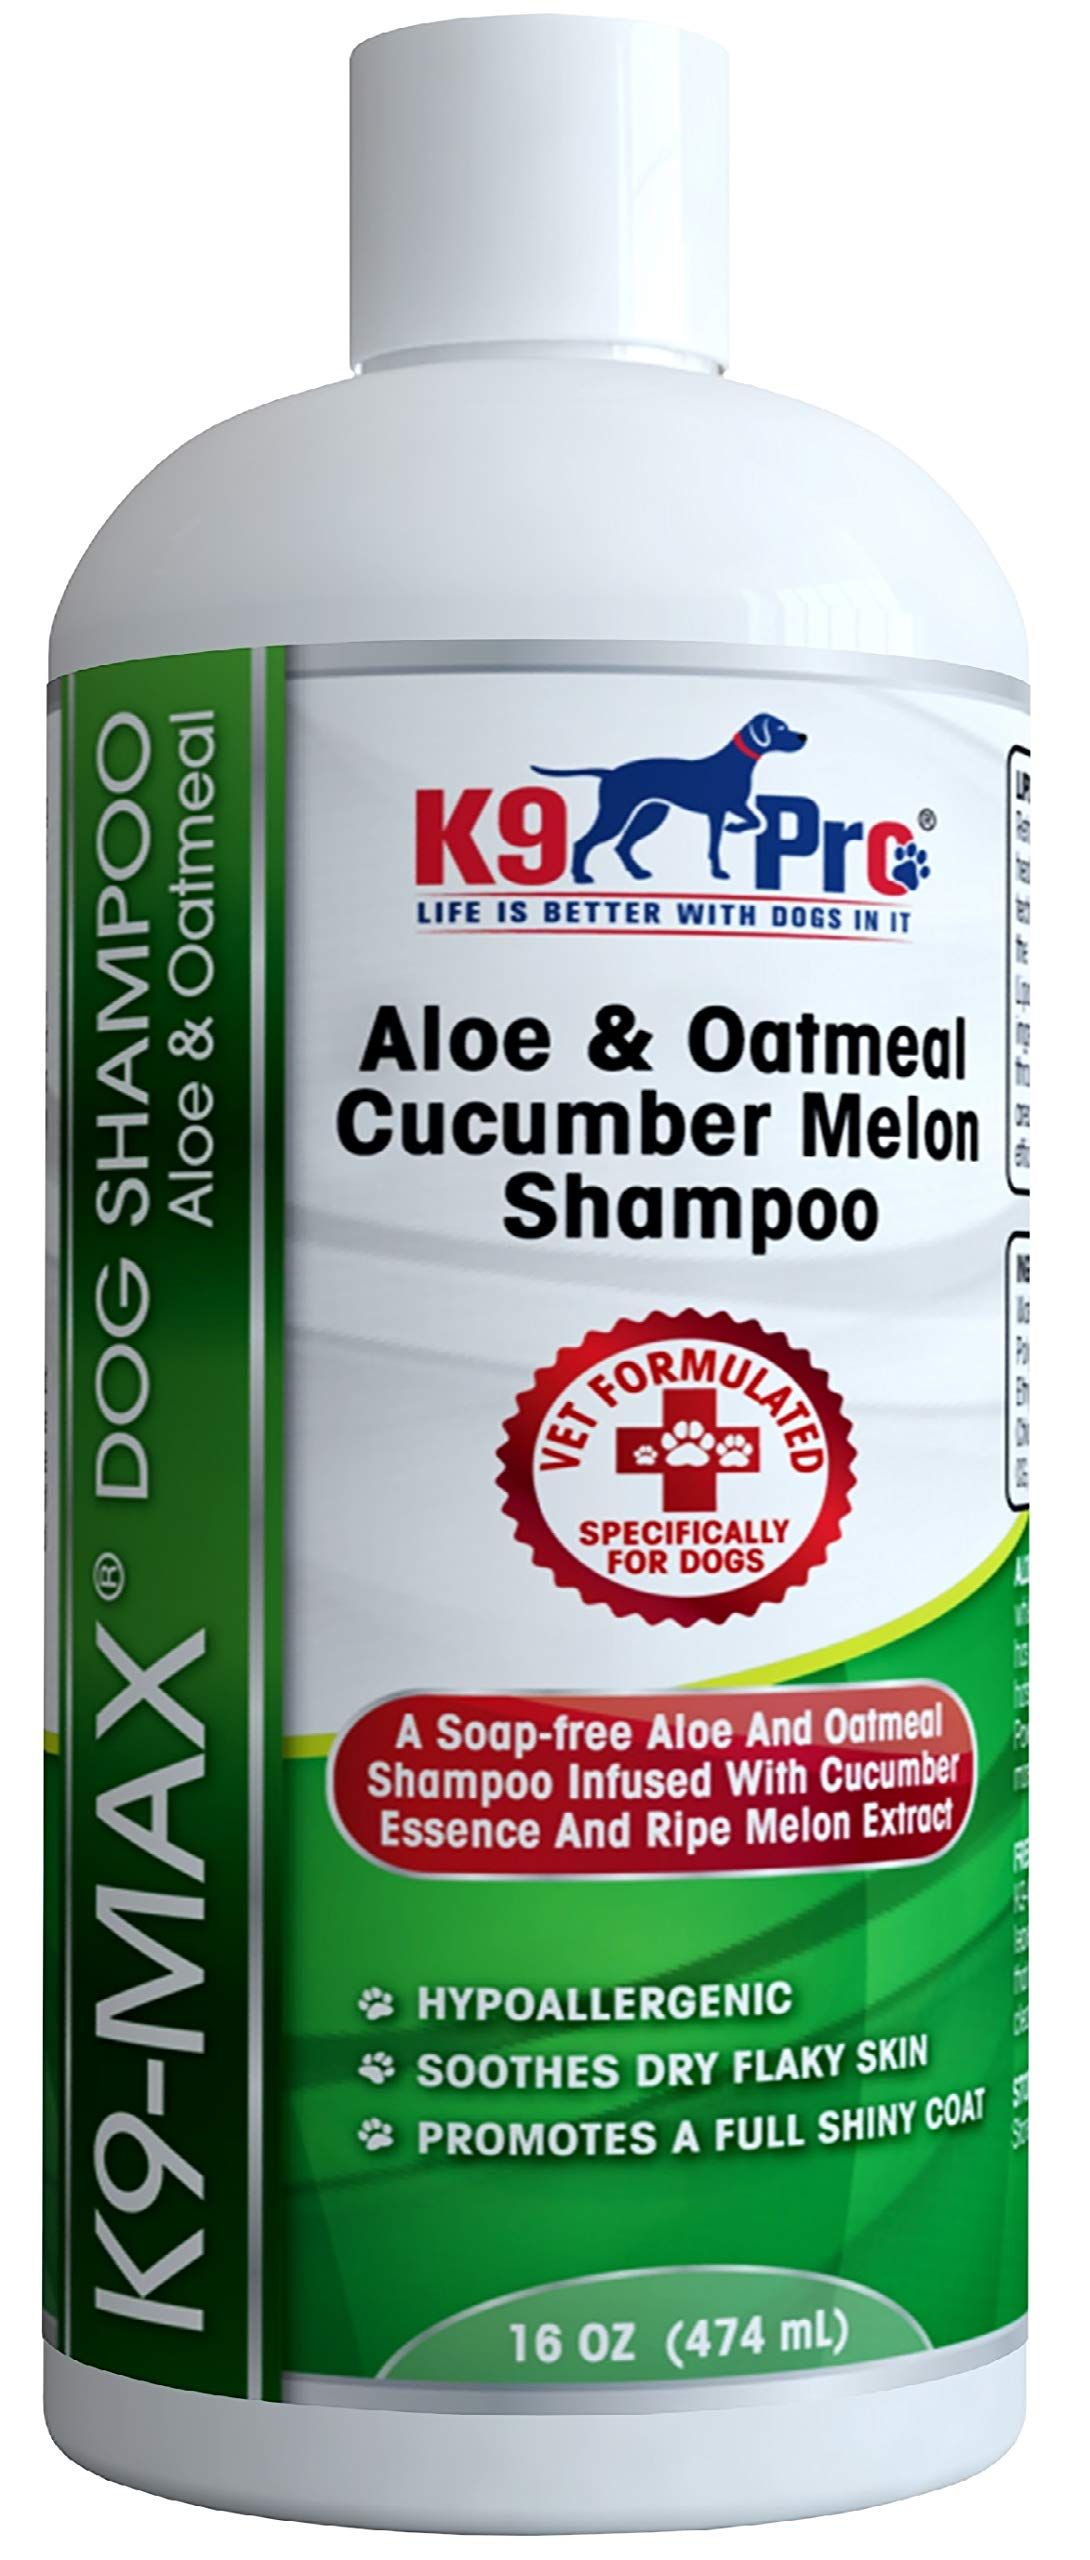 Oatmeal & Aloe Dog Shampoo and Conditioner For Dogs With Allergies And Dry Itchy Sensitive Skin. Best Hypoallergenic Medicated Tear Free Anti Itch Puppy Shampoo With Cucumber Essence & Melon Extract